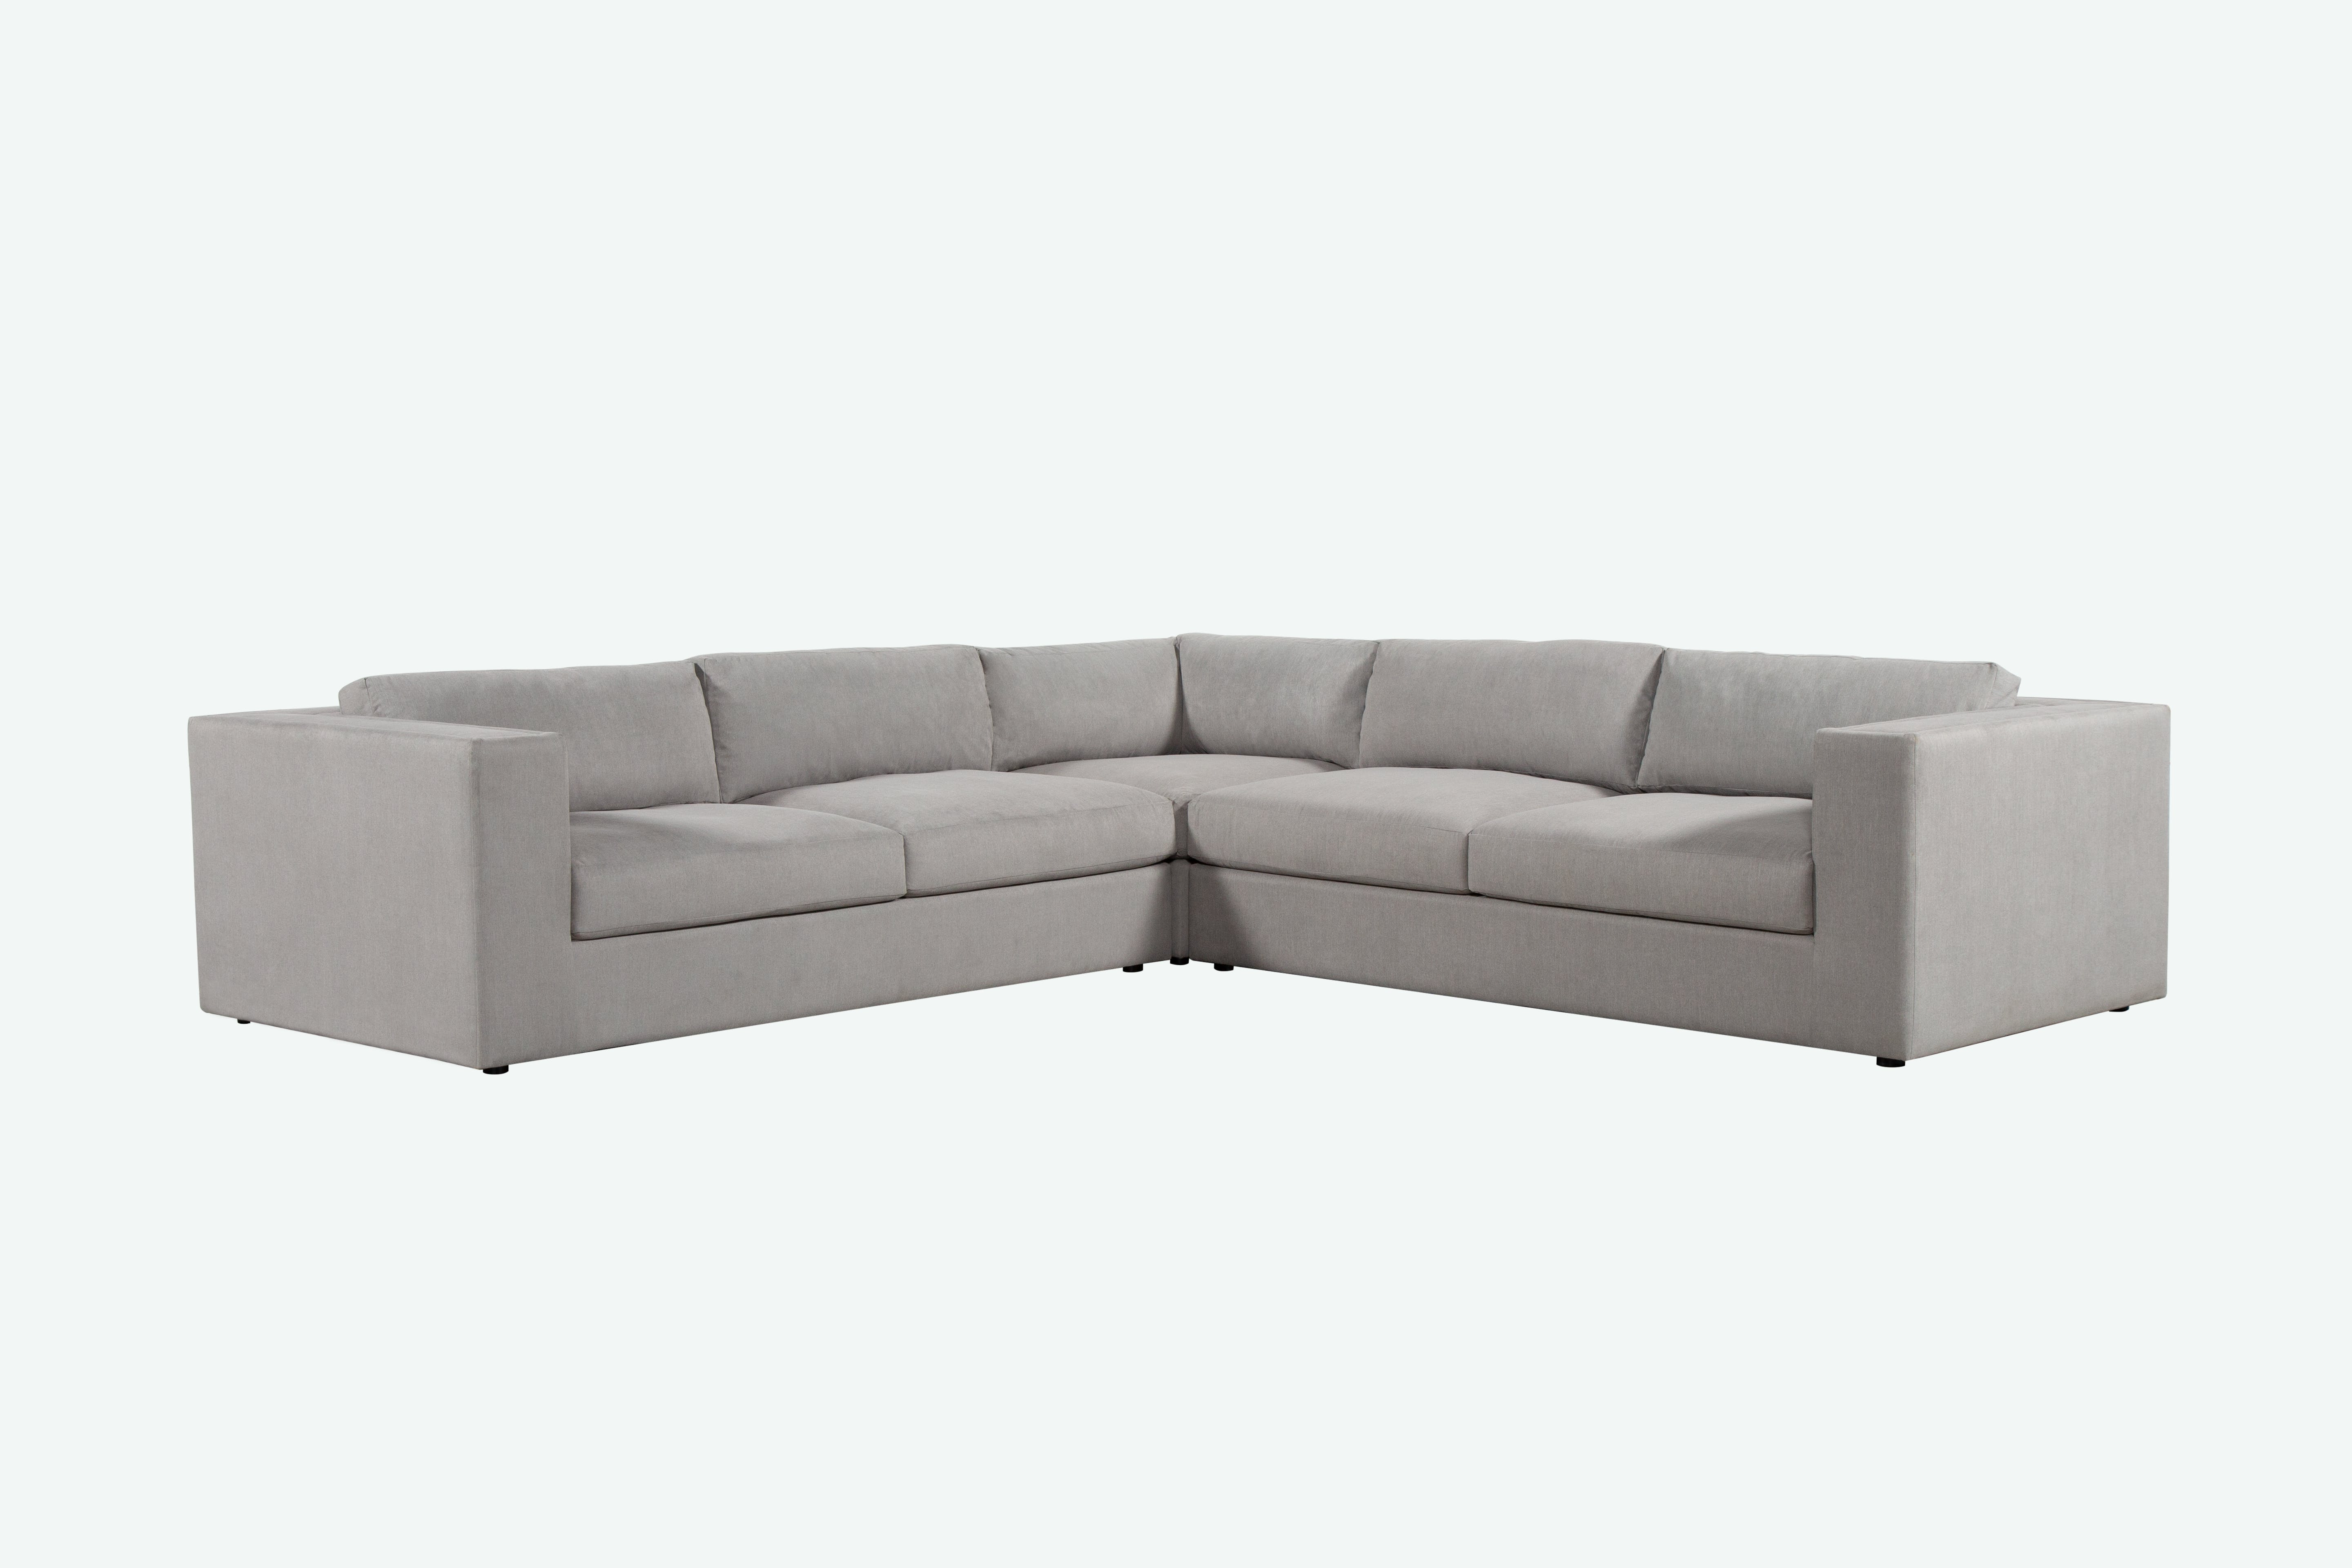 Trendy Nate Berkus Just Launched A Home Collection With Hubby Jeremiah Regarding Whitley 3 Piece Sectionals By Nate Berkus And Jeremiah Brent (View 16 of 20)